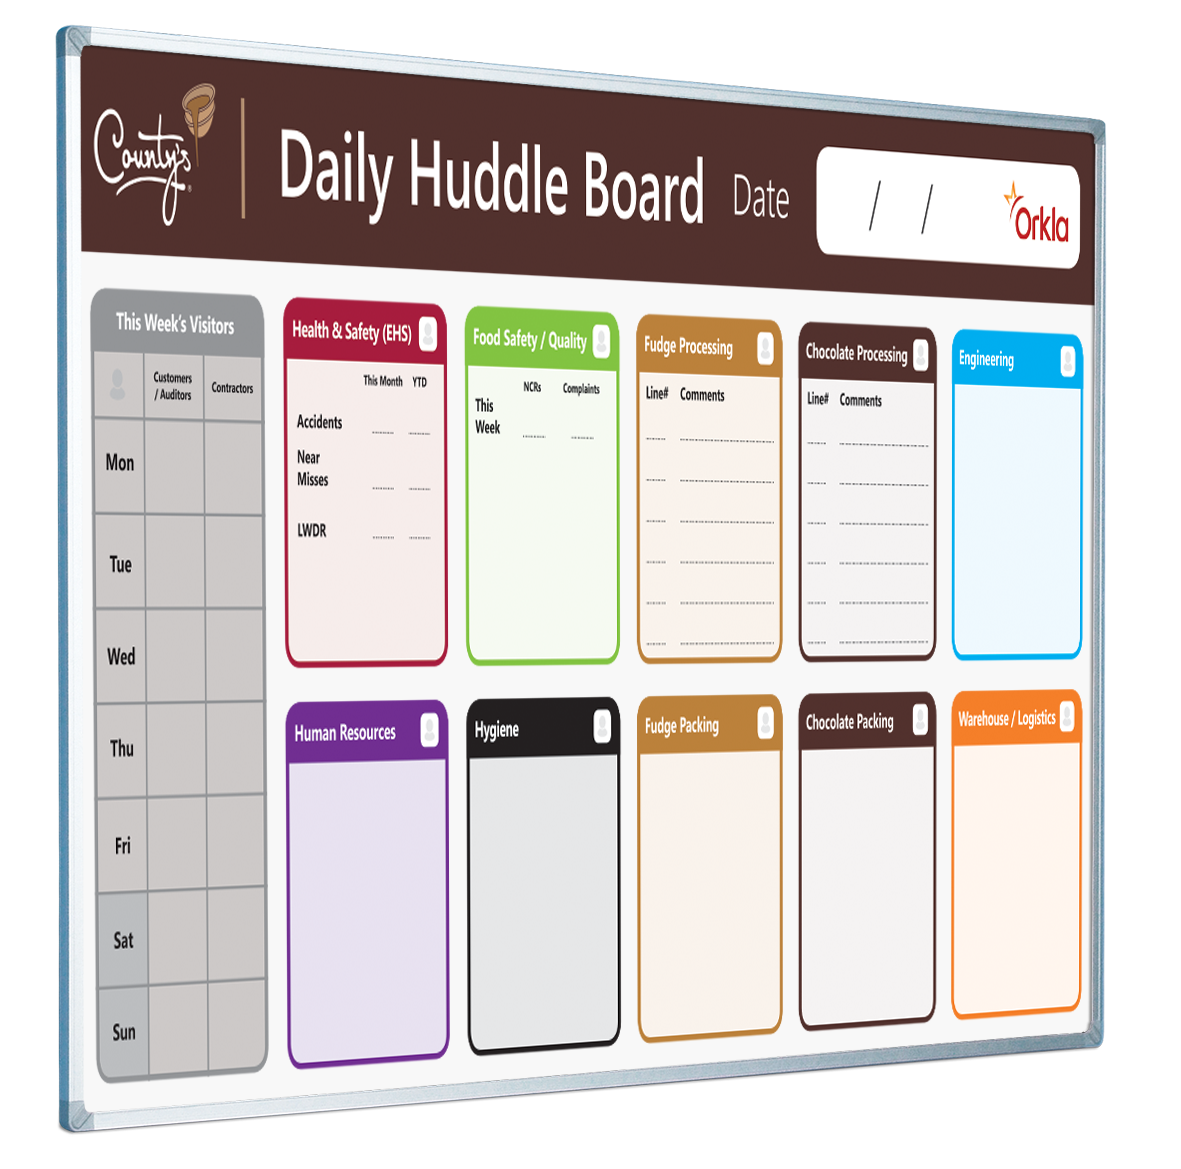 A huddle board is a standardised visual tool meant to help